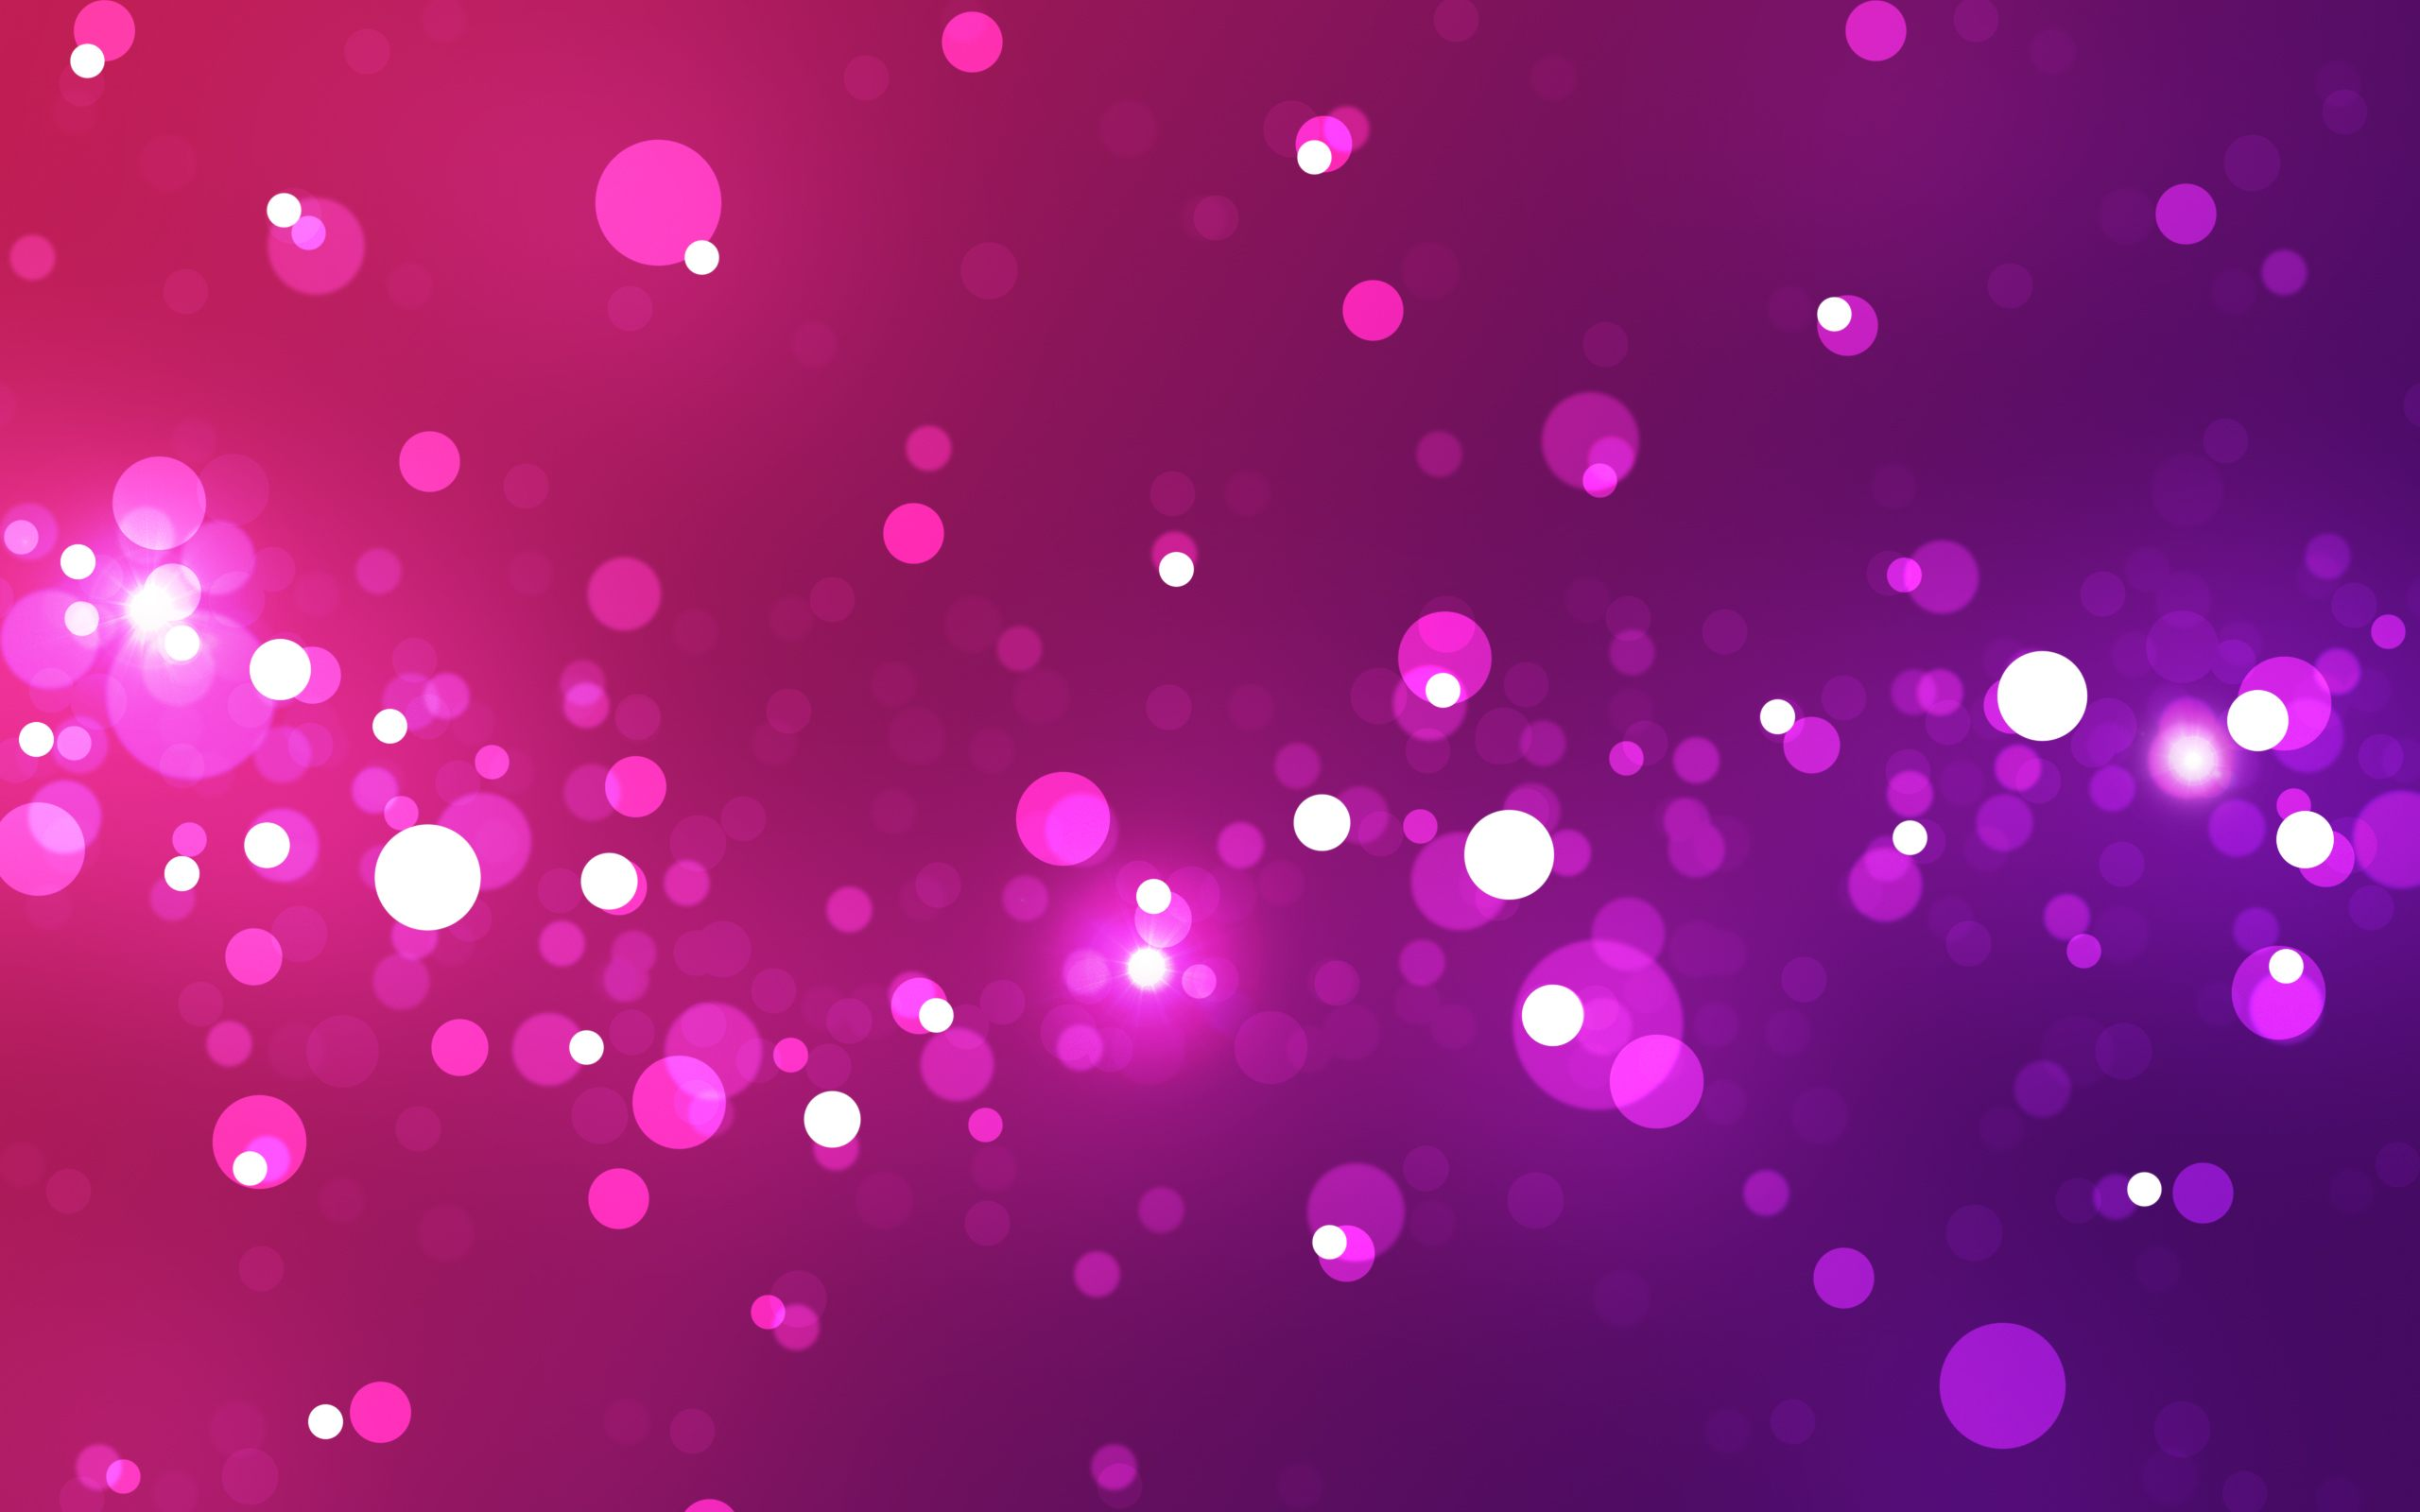 Pink Glitter Backgrounds